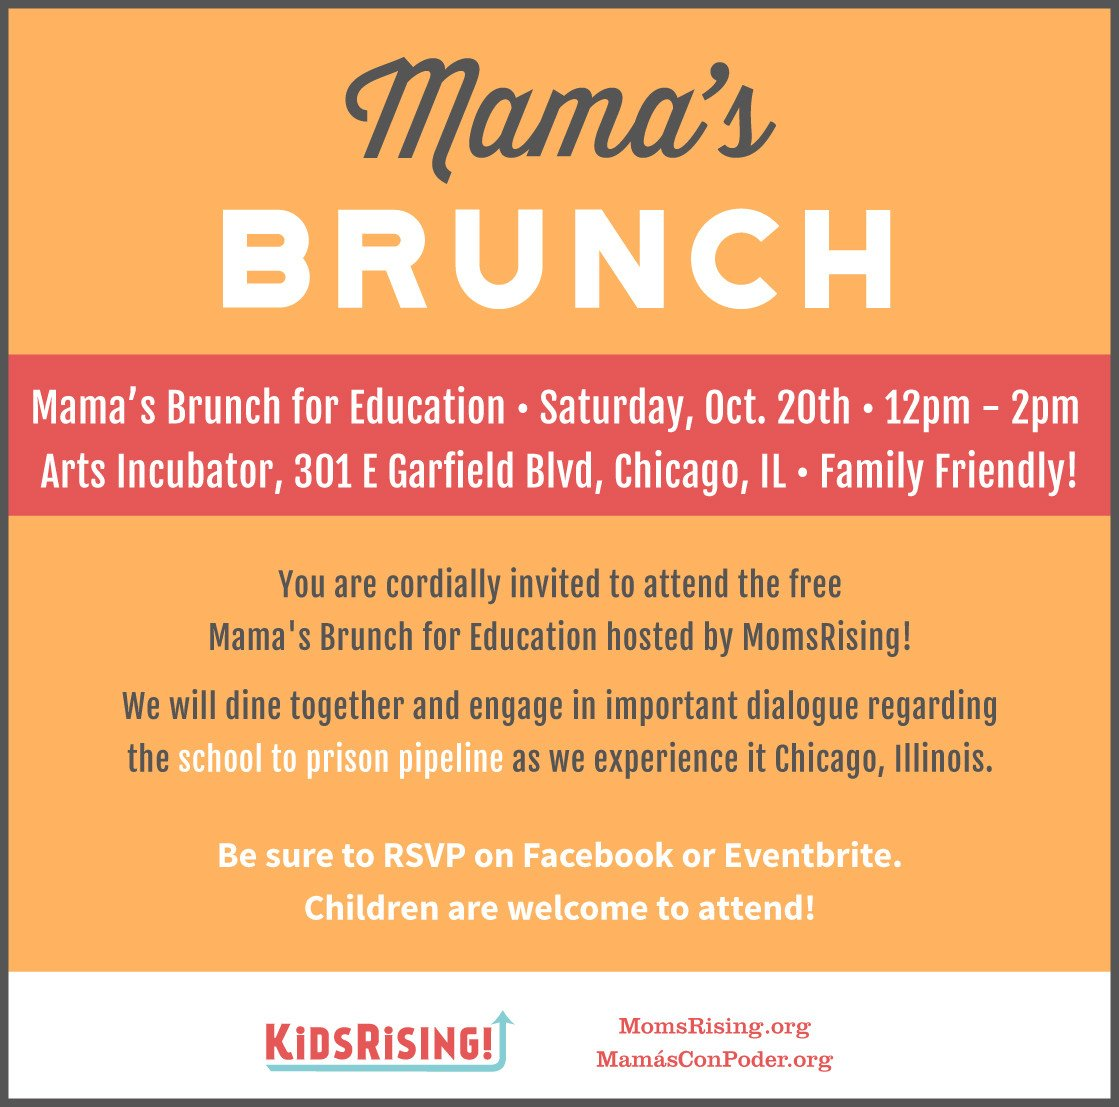 Join us in📍Chicago, IL for our Mama's Brunch for Education on Sat., Oct. 20 at 12pm - hosted by us and @Kids_Rising at the @artspubliclife!  We will eat, laugh, and discuss ways we can dismantle the #SchooltoPrisonPipeline https://t.co/L89z1VvQrF #Mamas4Ed #JuvenileJusticeMonth